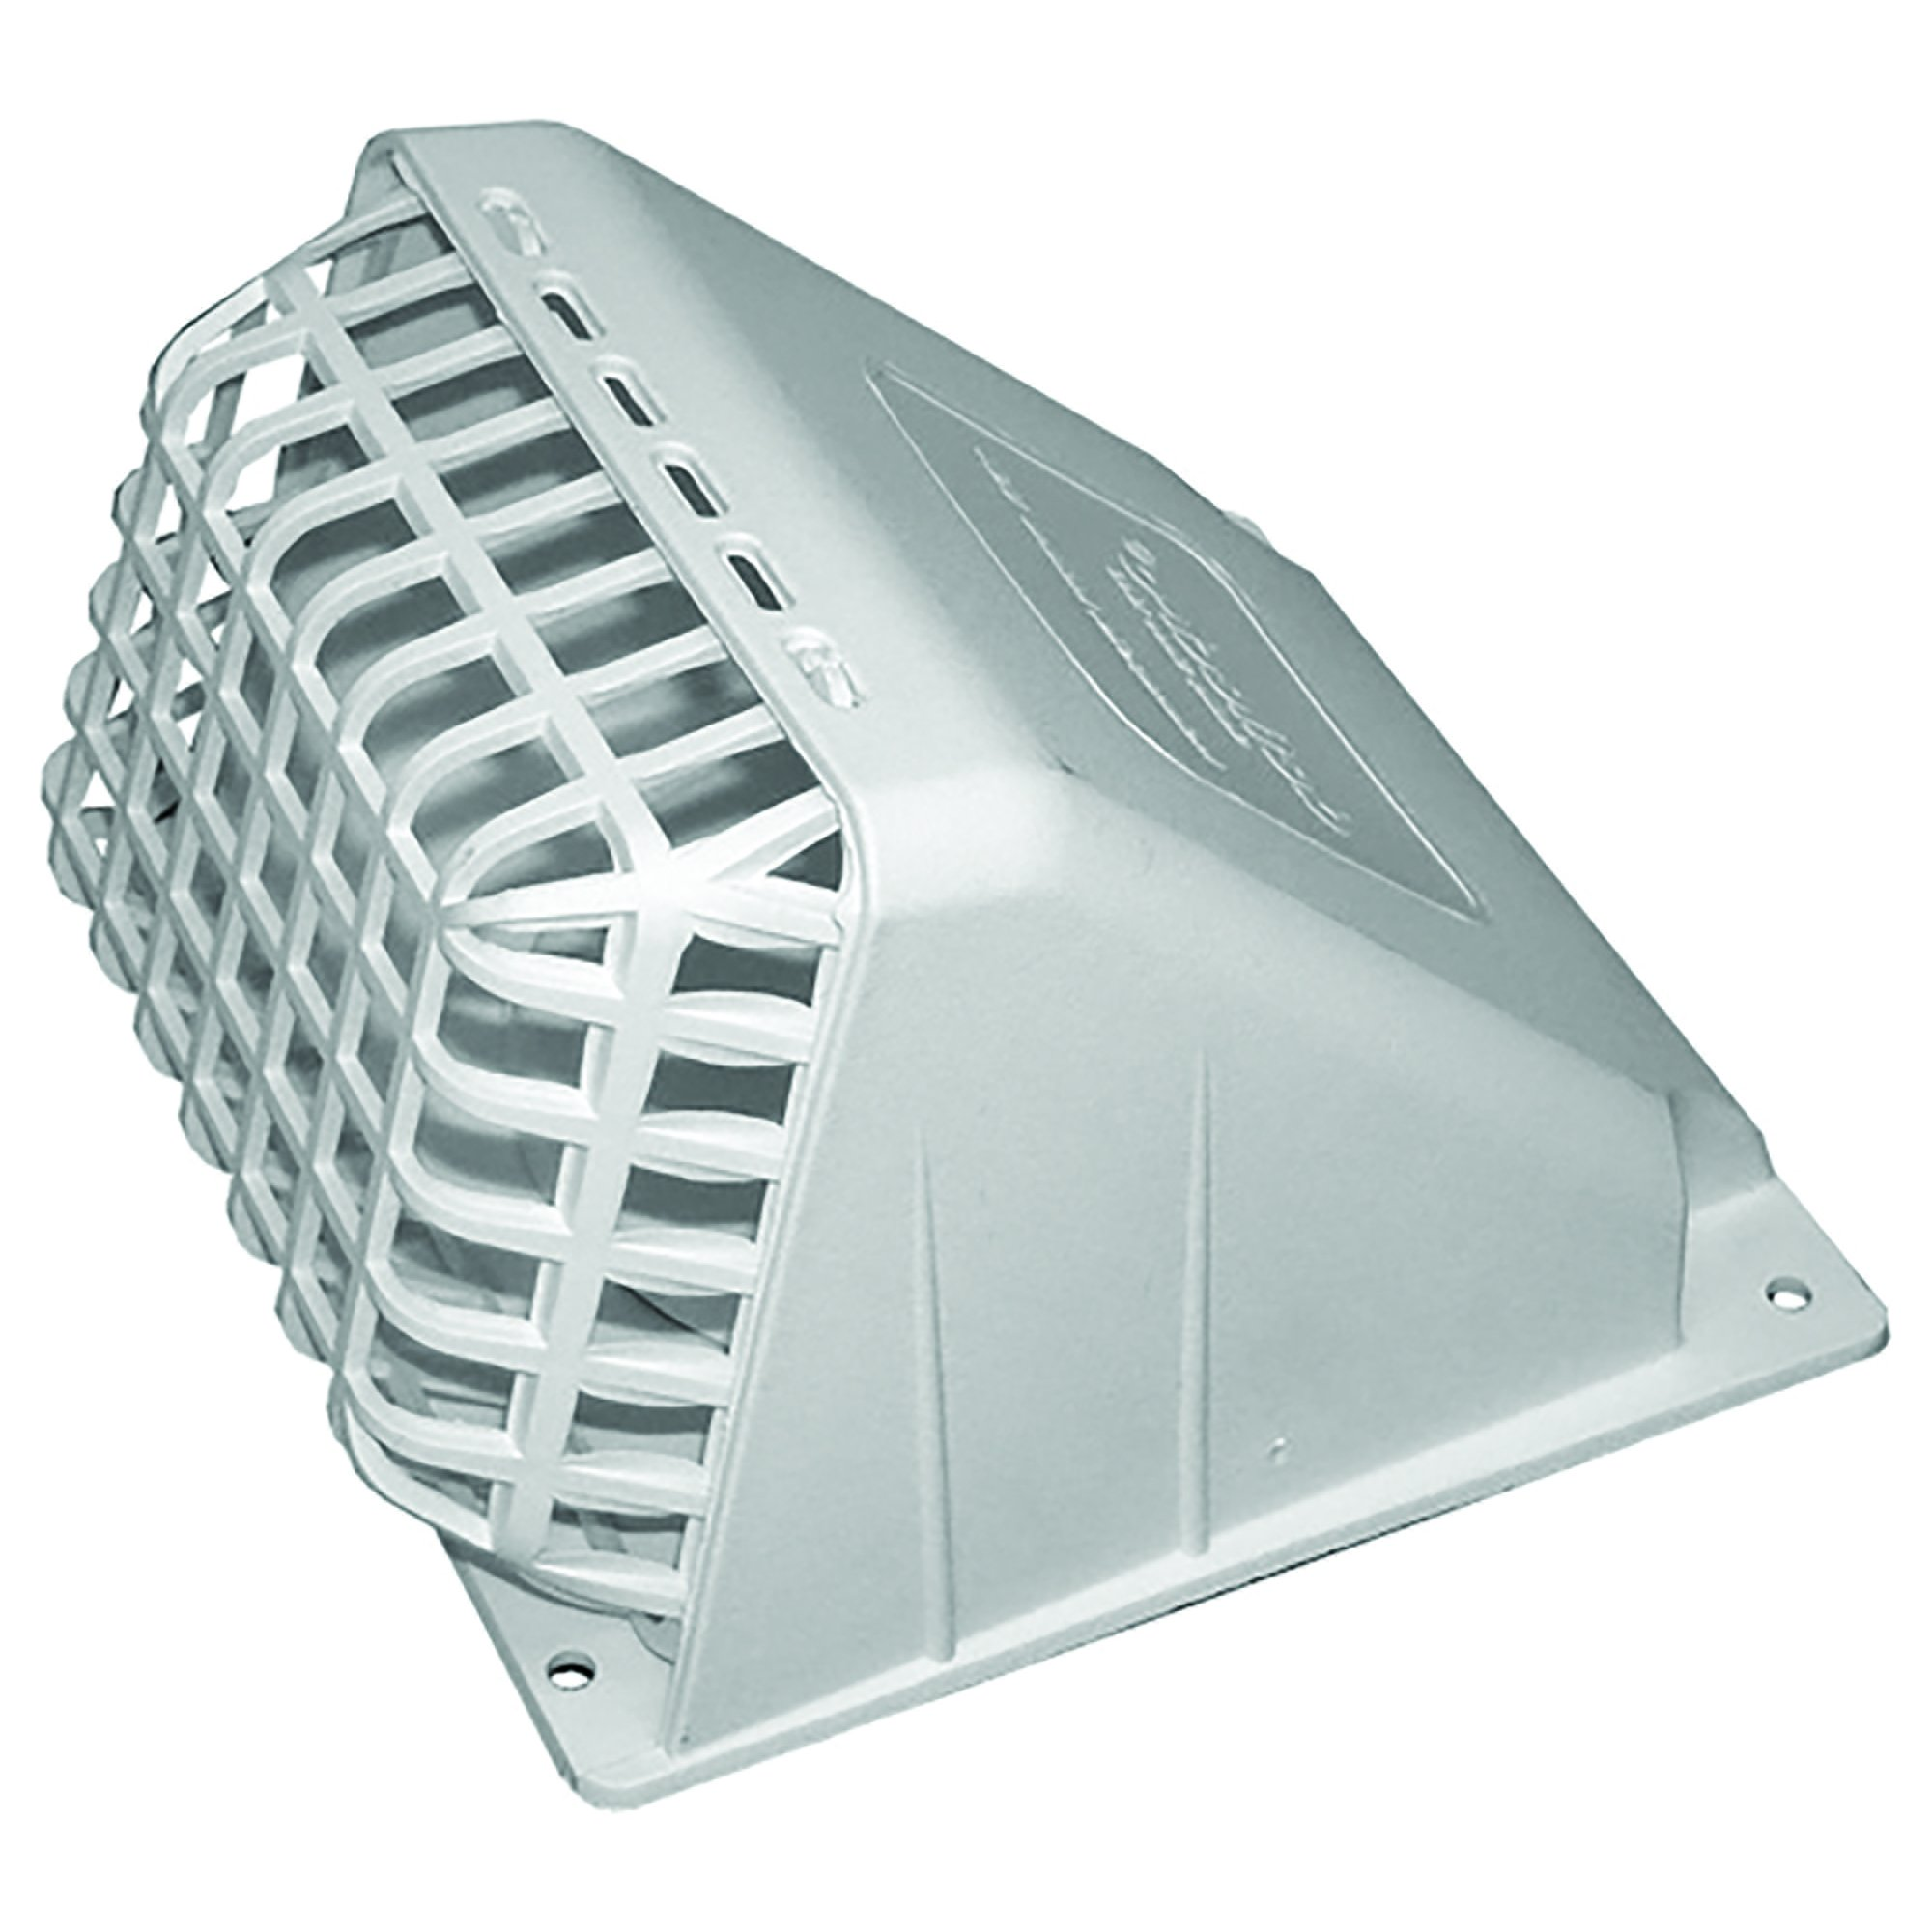 Deflecto Wide Mouth Dryer Vent Hood with Removable Bird Guard, Damper, Weather-Resistant, 4 Inches Hood, White (HR4W)